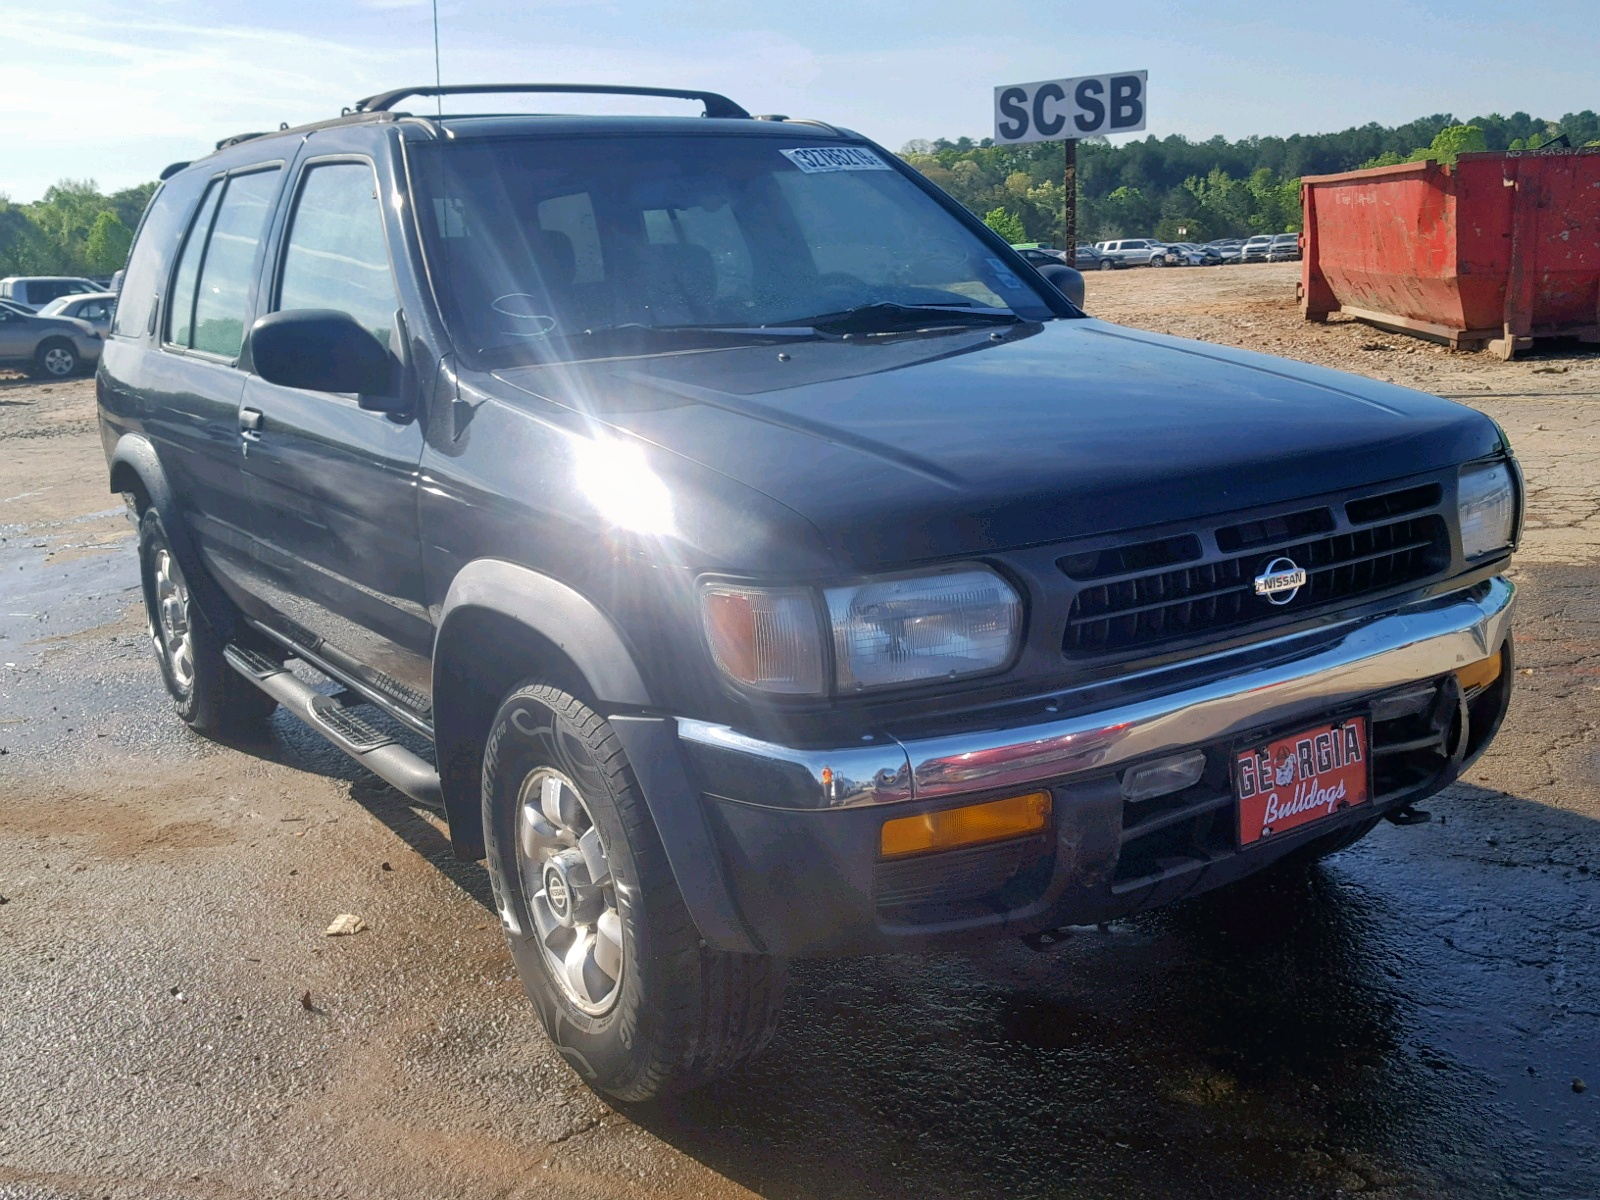 Salvage 1998 Nissan PATHFINDER for sale